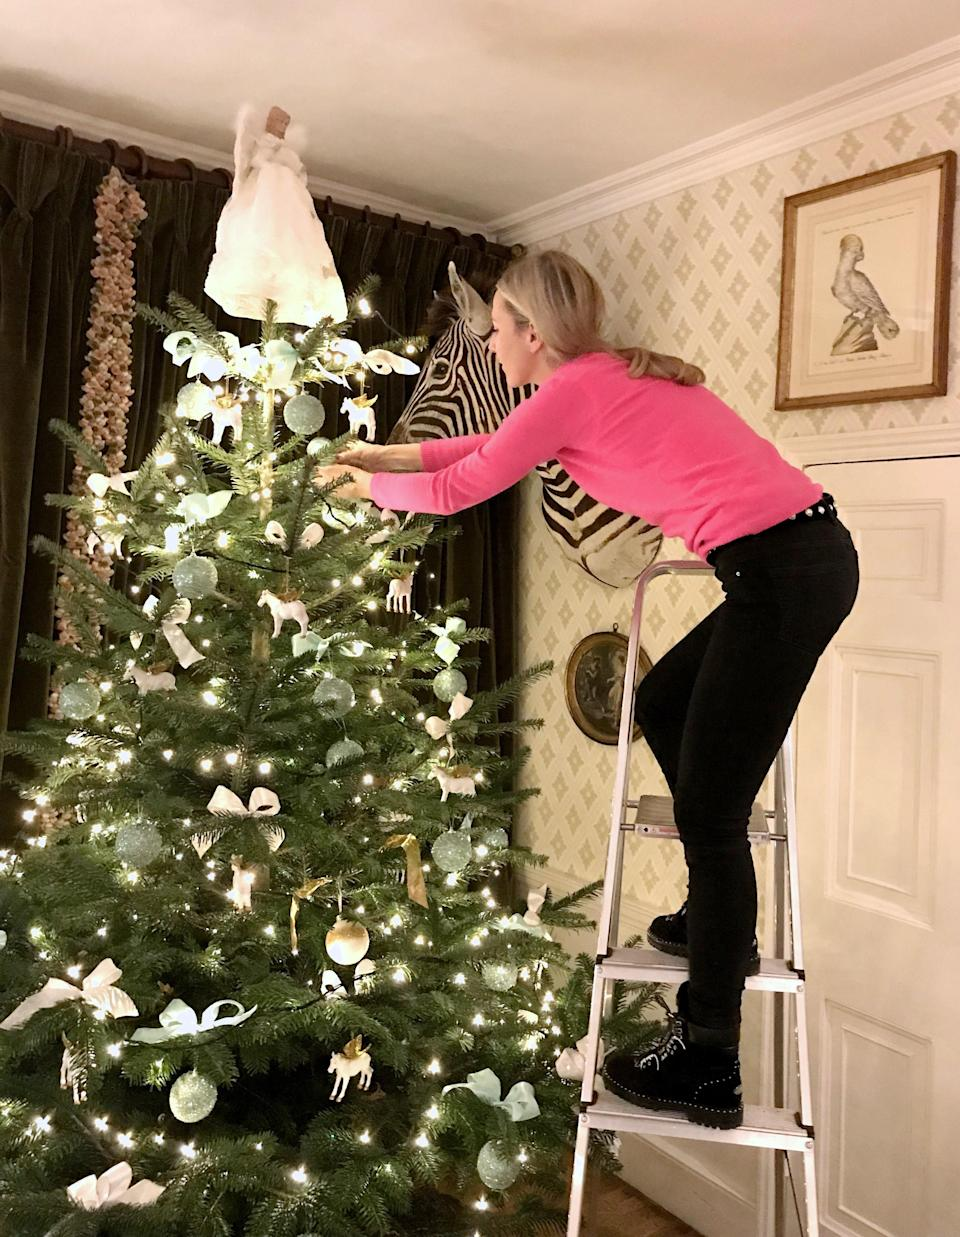 Adding the final touches to our tree. This lovely angel comes out every year.